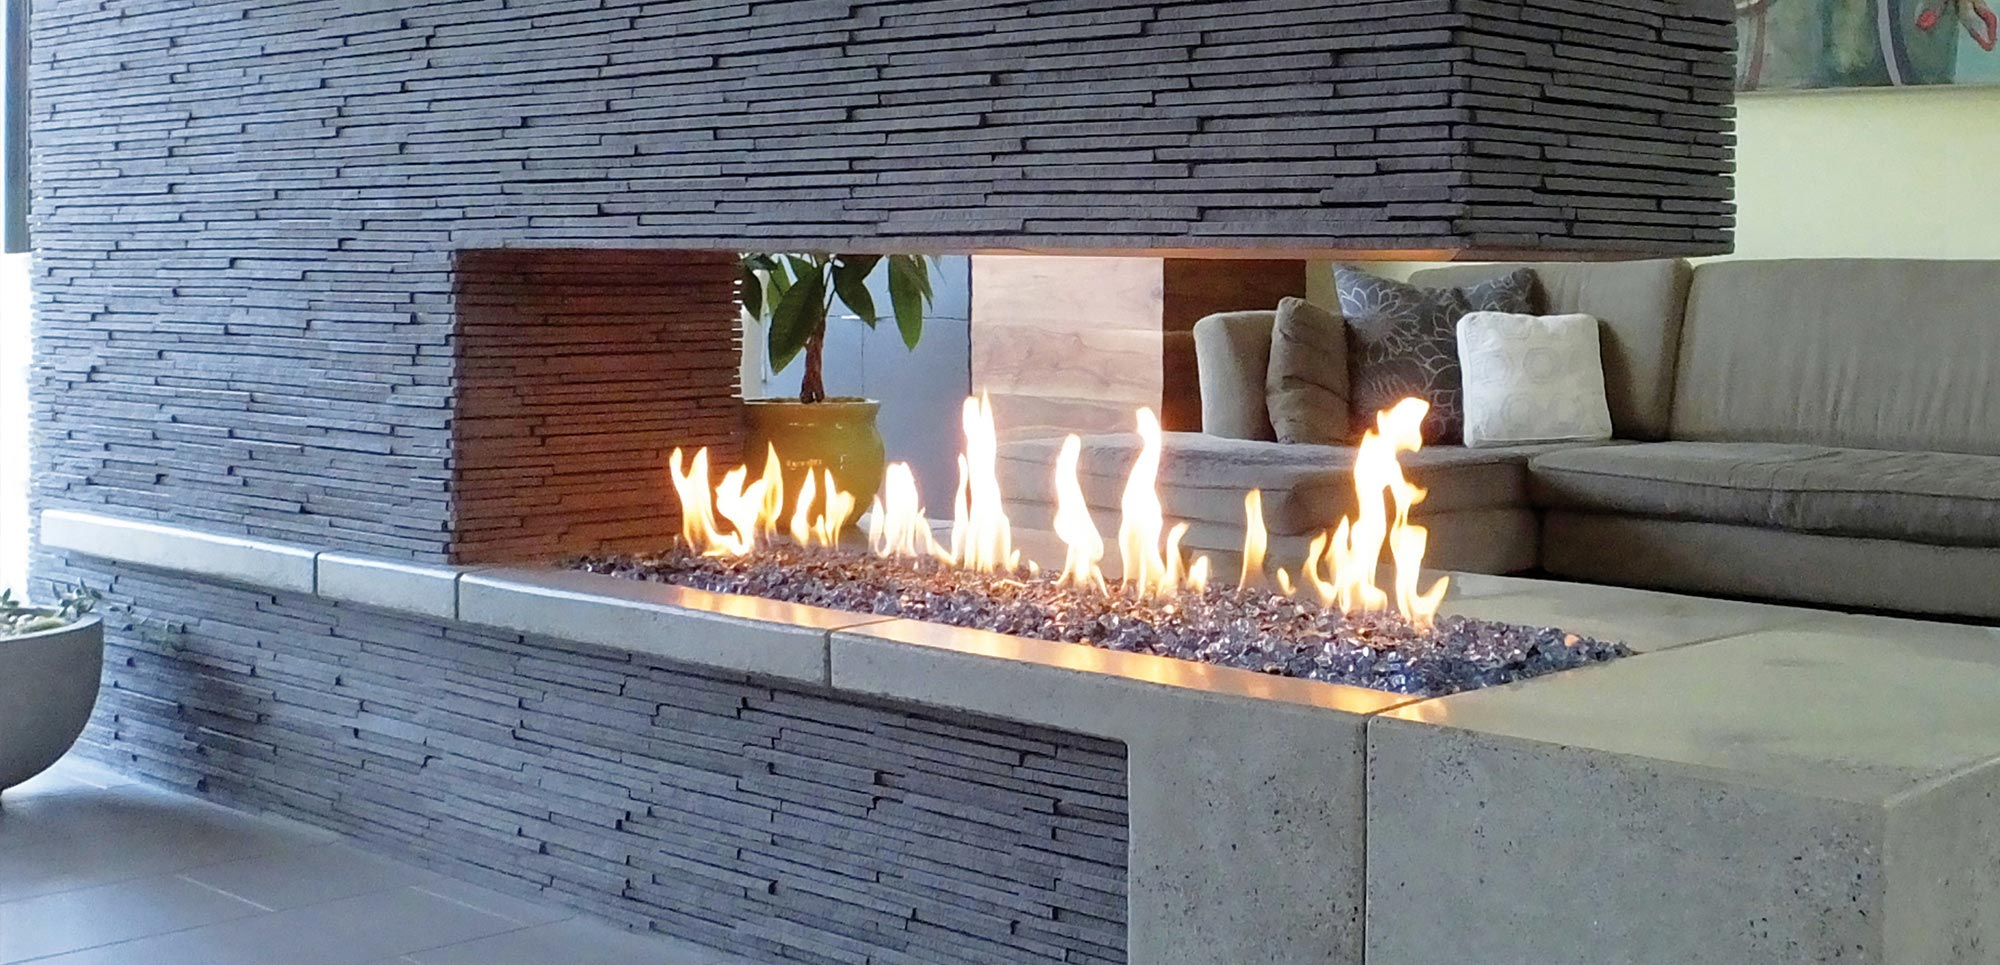 Spark Modern Fires Spark Modern Fires Offers The Best Selection Of Modern Gas Fireplaces Be